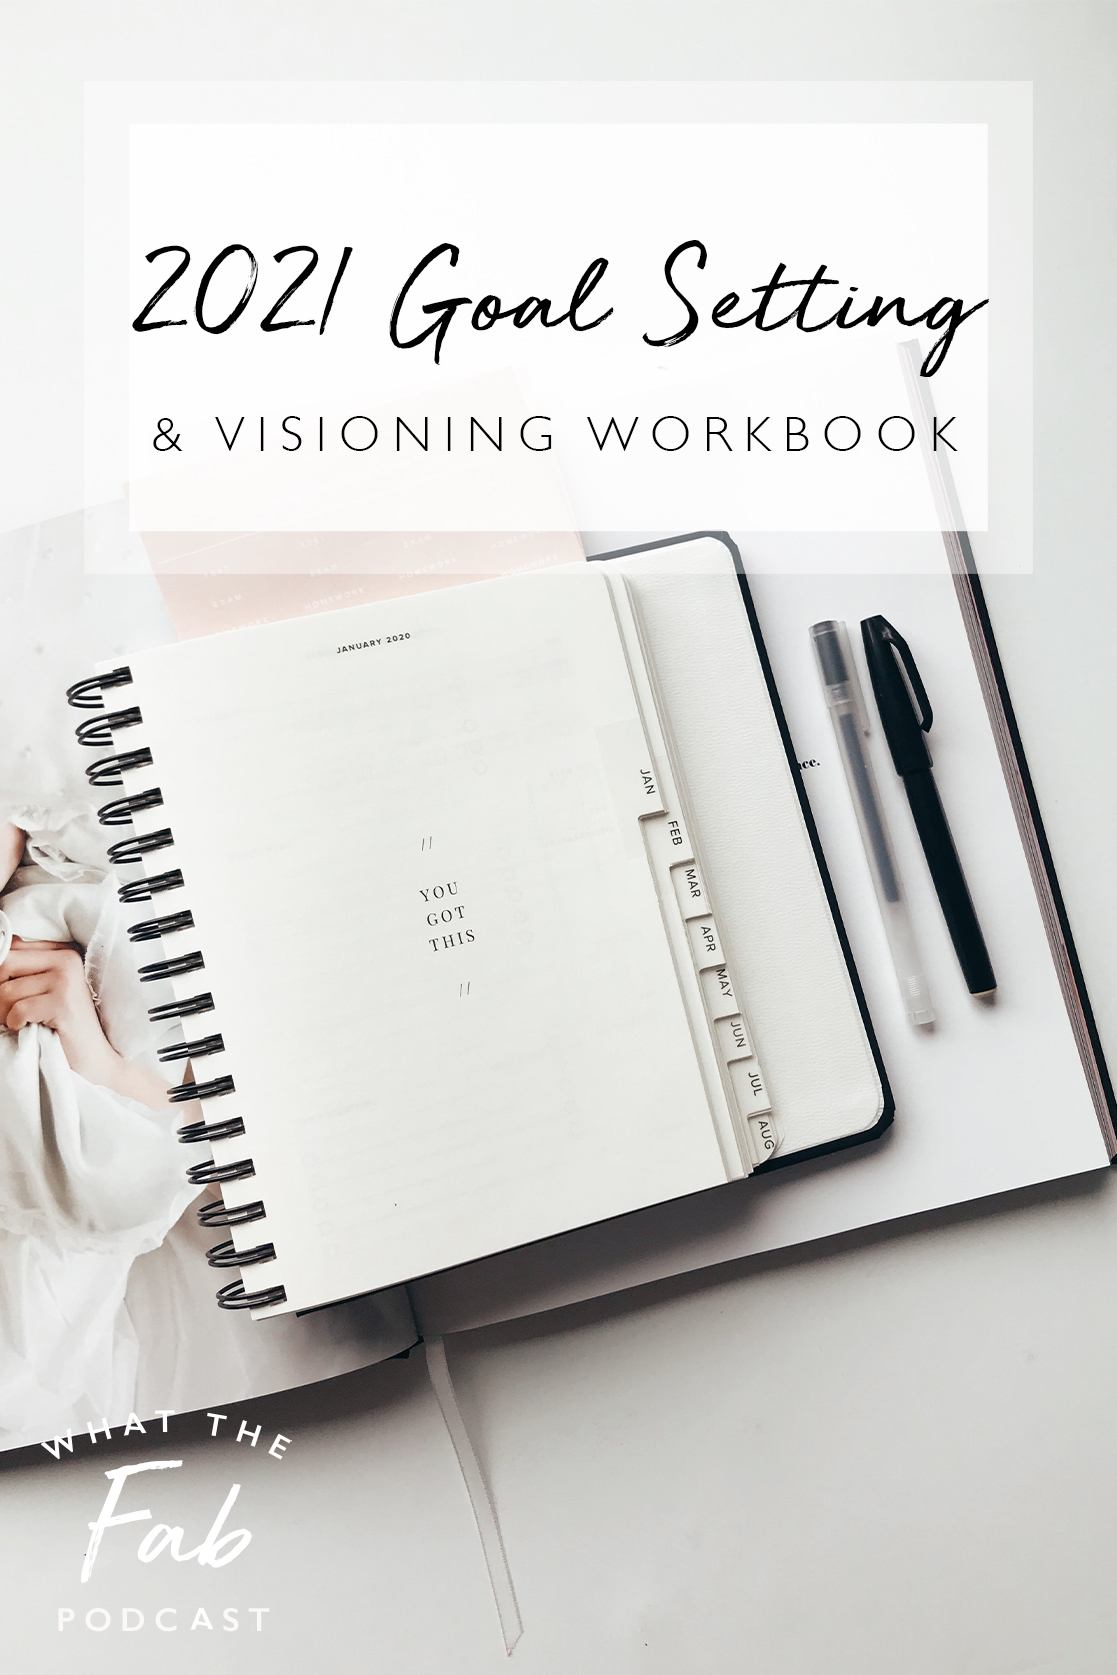 2021 goal setting, by lifestyle blogger What The Fab